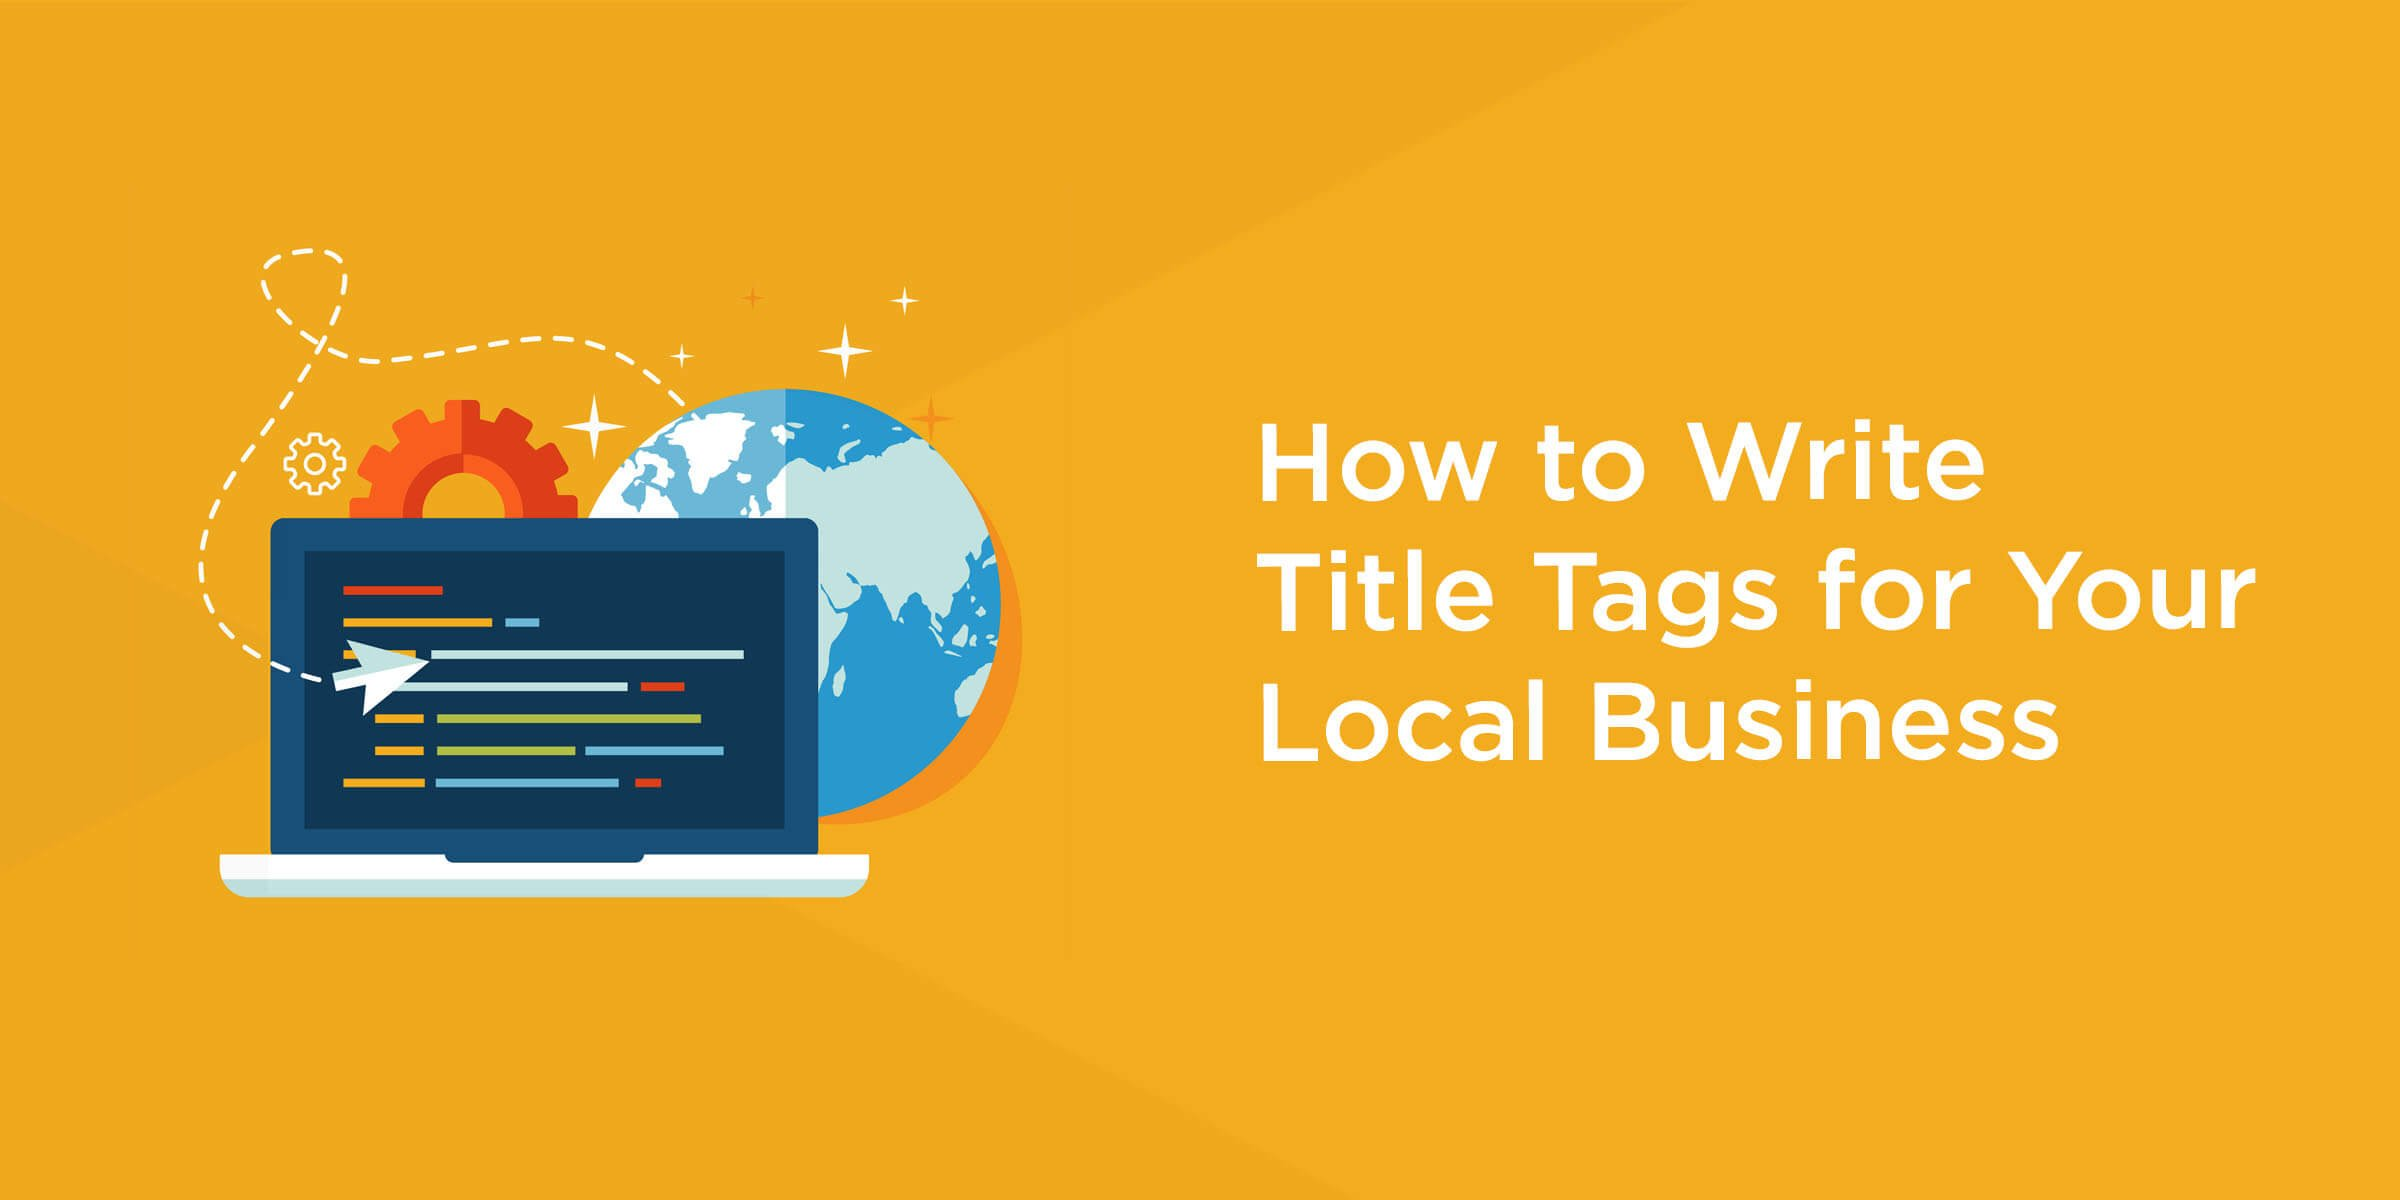 How-to-Write-Title-Tags-for-Your-Local-Business-2020-McBreen-Marketing-Fort-Collins-CO